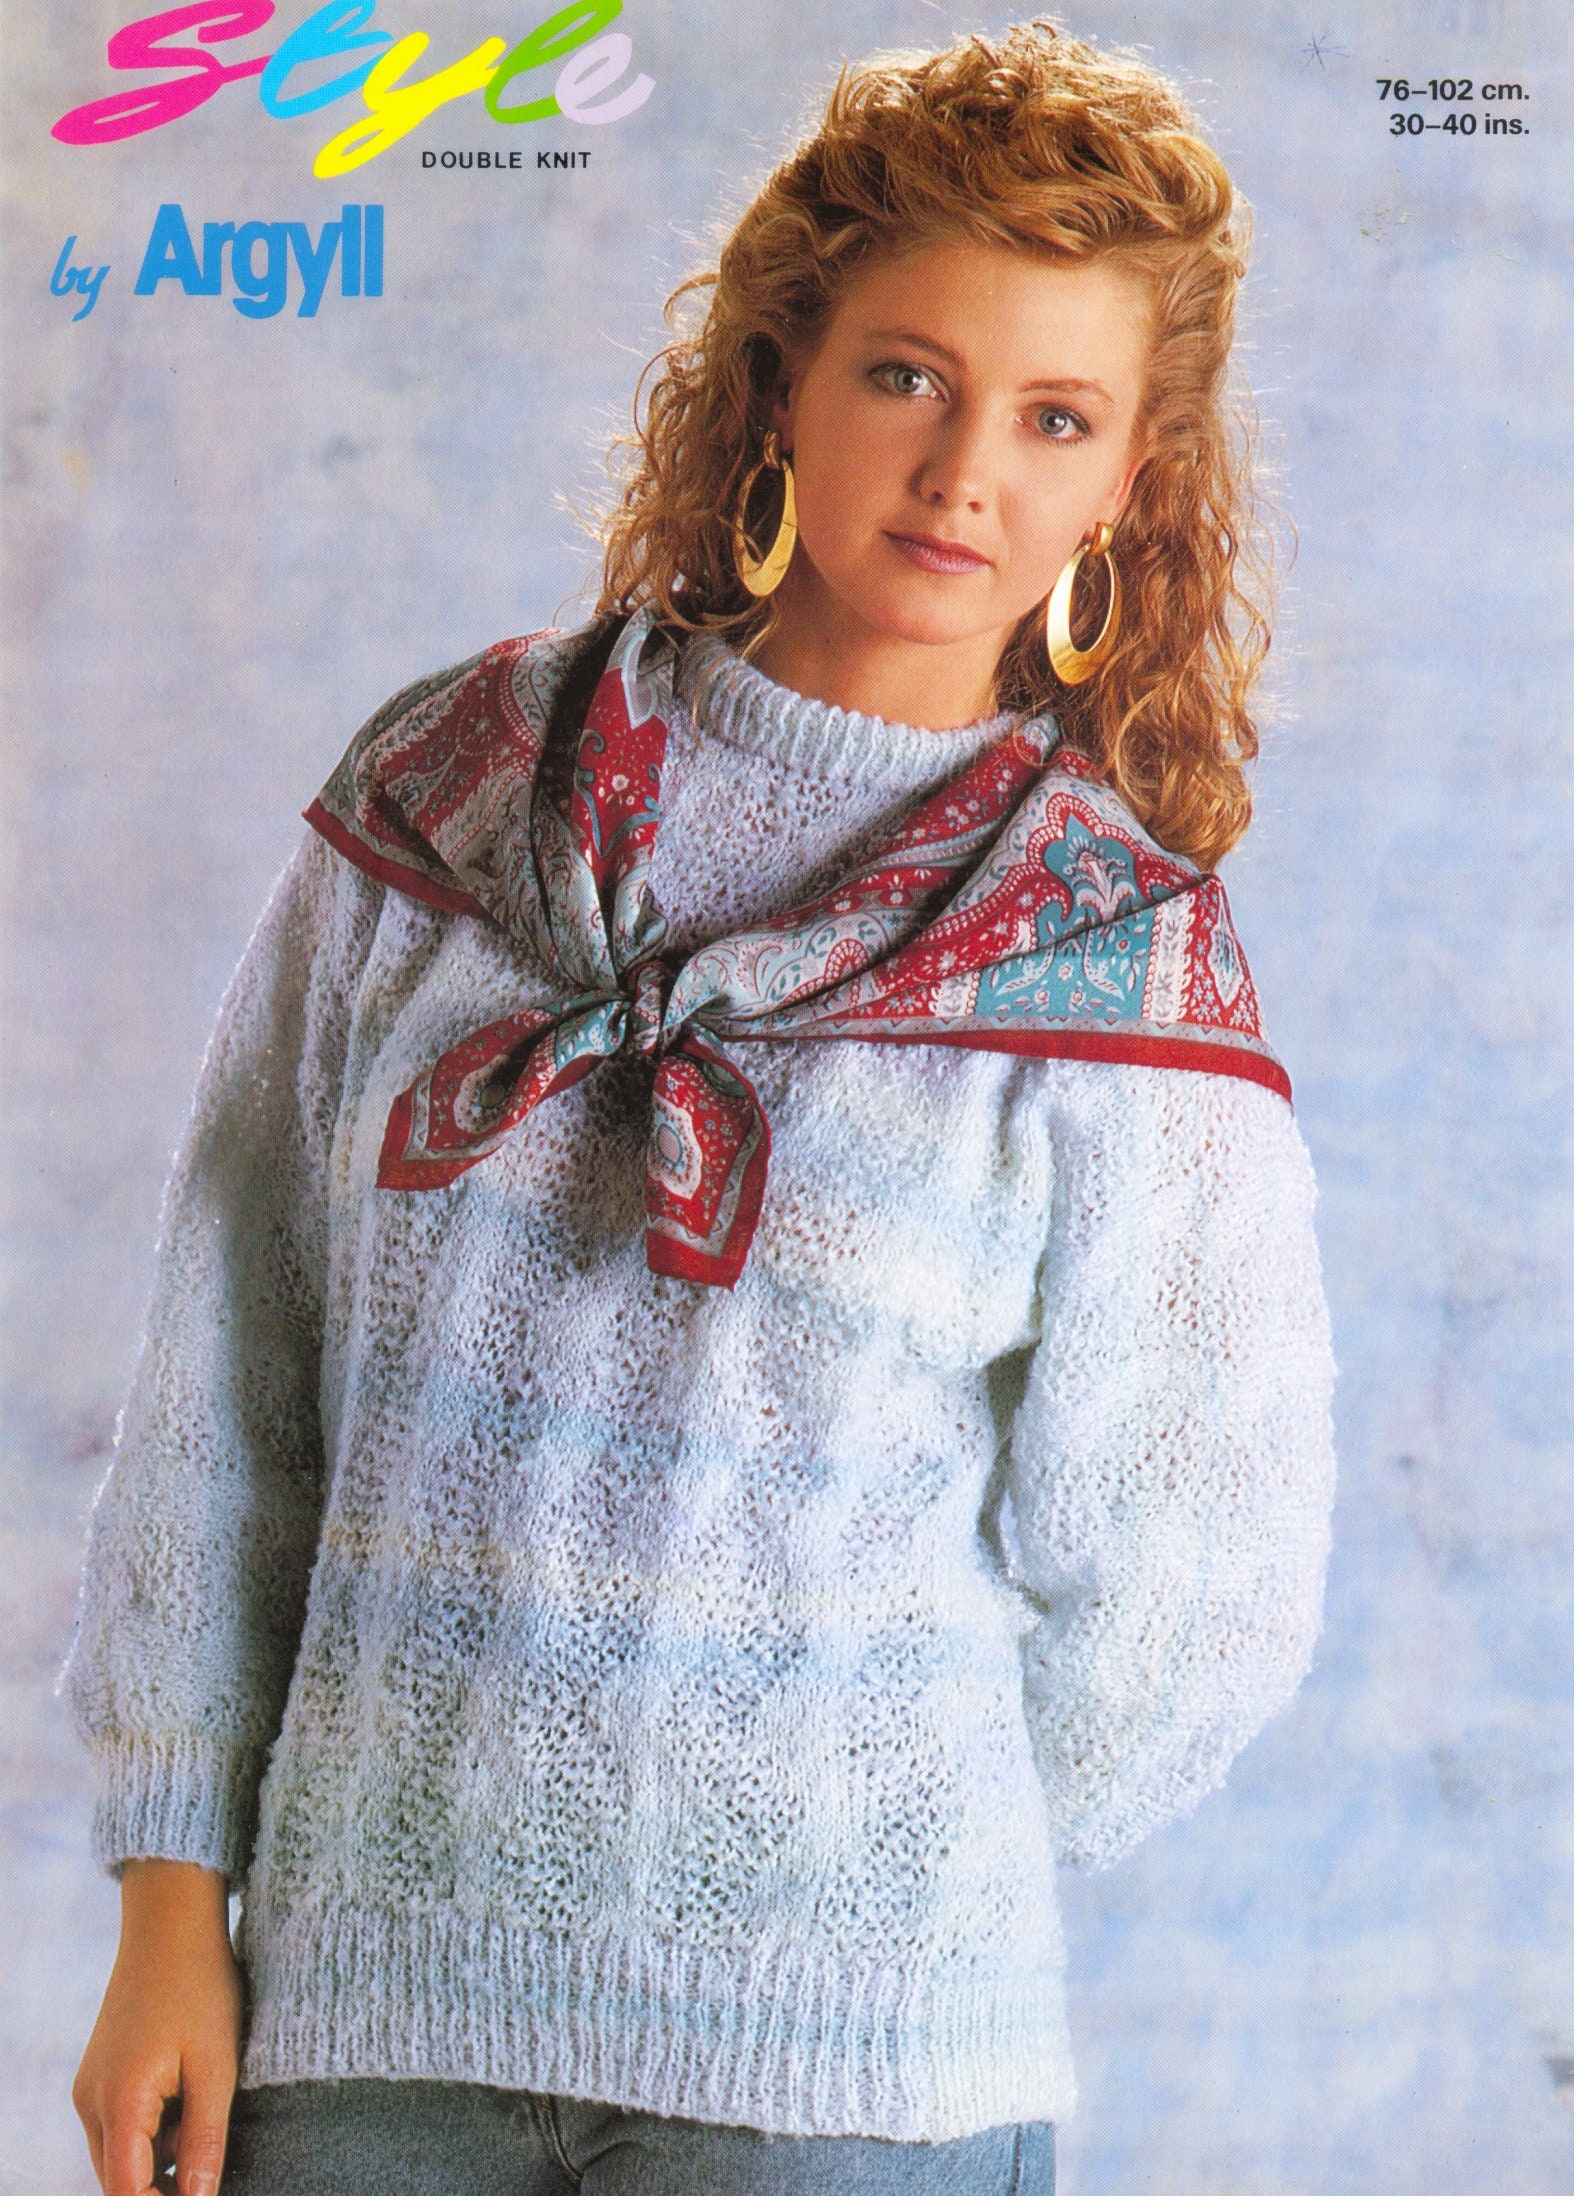 4441411d4 Women s Sweater KNiTTING PATTERN Argyll Knitting Pattern